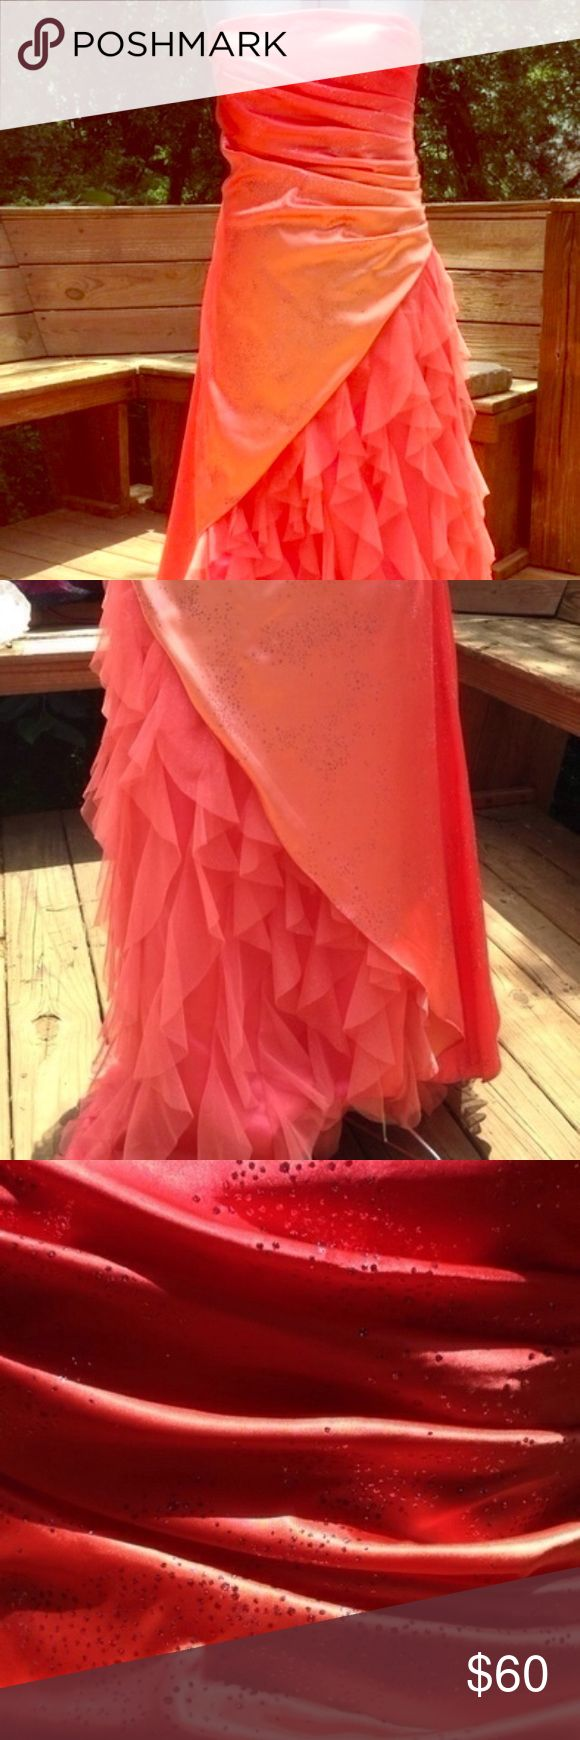 Orange strapless ombré prom dress Sparkly Orange ombré prom dress with ruffled underskirt shown by asymmetrical over skirt. Worn only once with extremely slight damage around zipper, this does not impact the rest of the dress. Strapless but the top stays up really well. Jump Dresses Prom